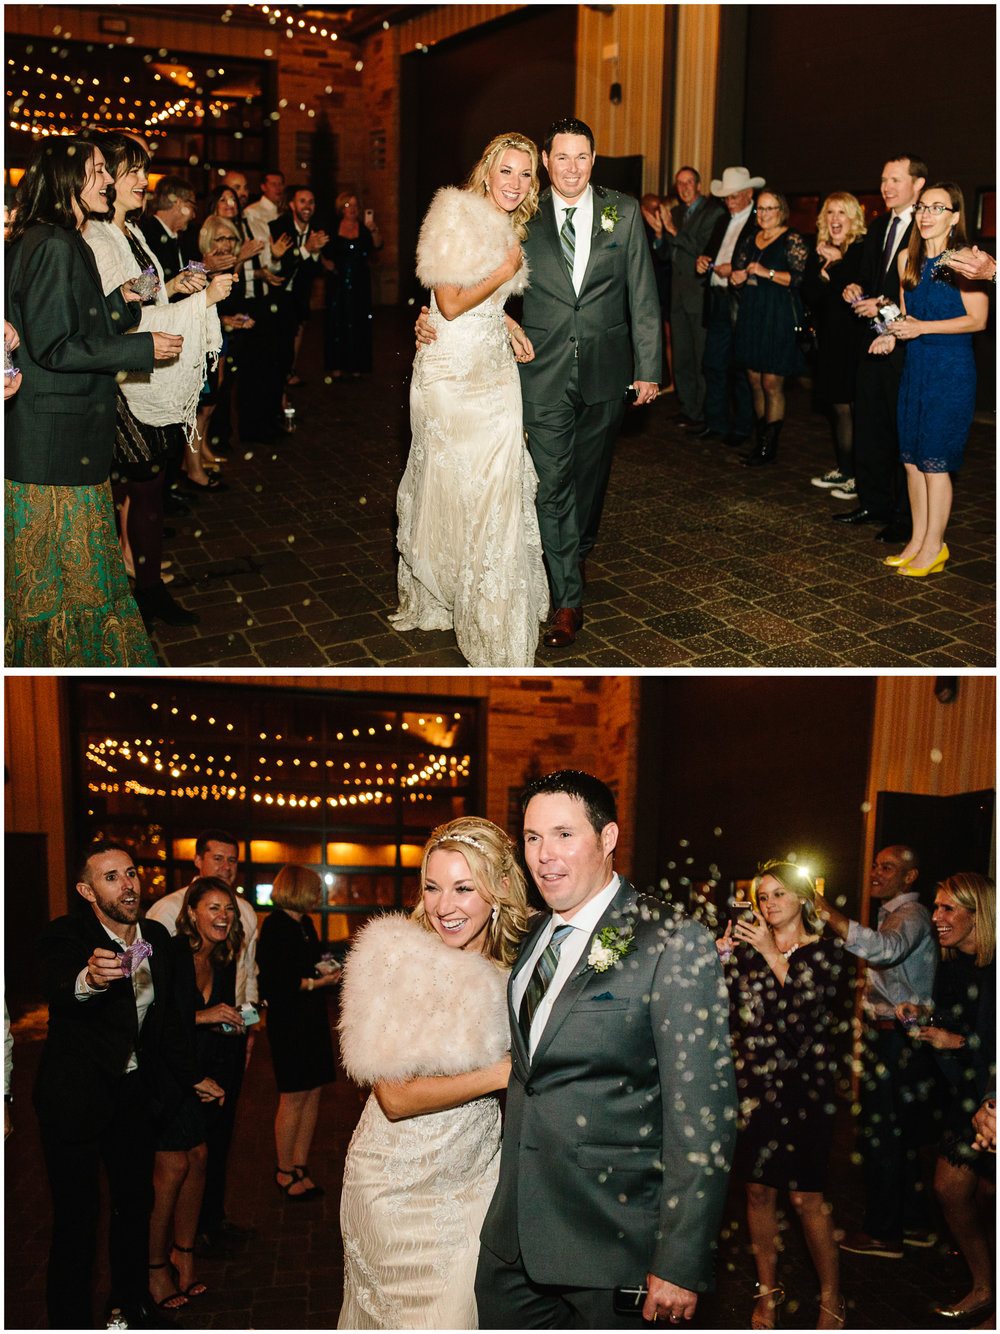 spruce_mountain_ranch_wedding_93.jpg